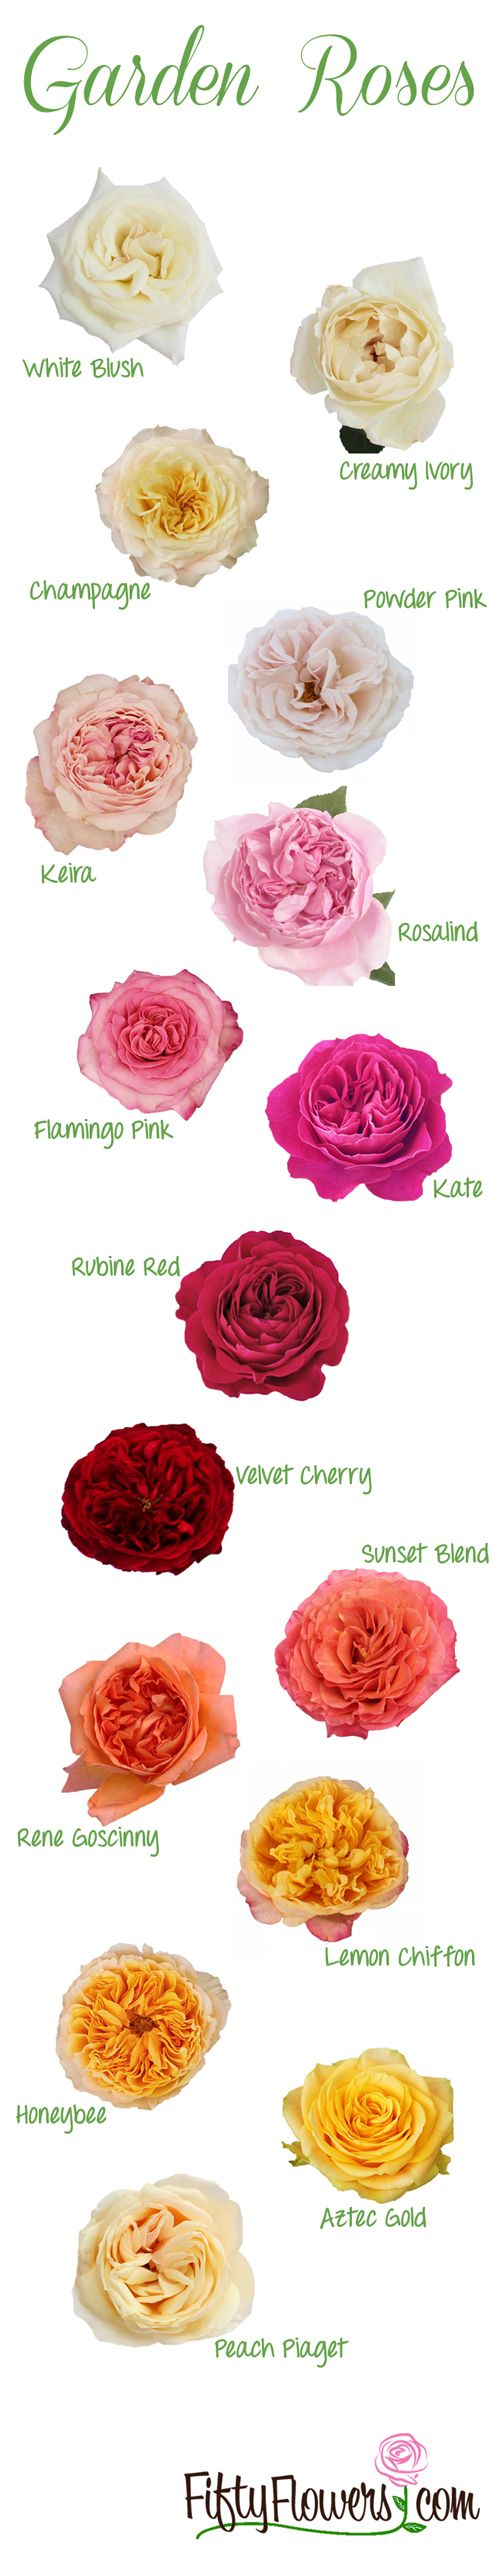 Holiday arrangements wholesale bulk flowers fiftyflowers - These Are Just Some Of The Gorgeous Garden Roses Available At Fiftyflowers Com Click